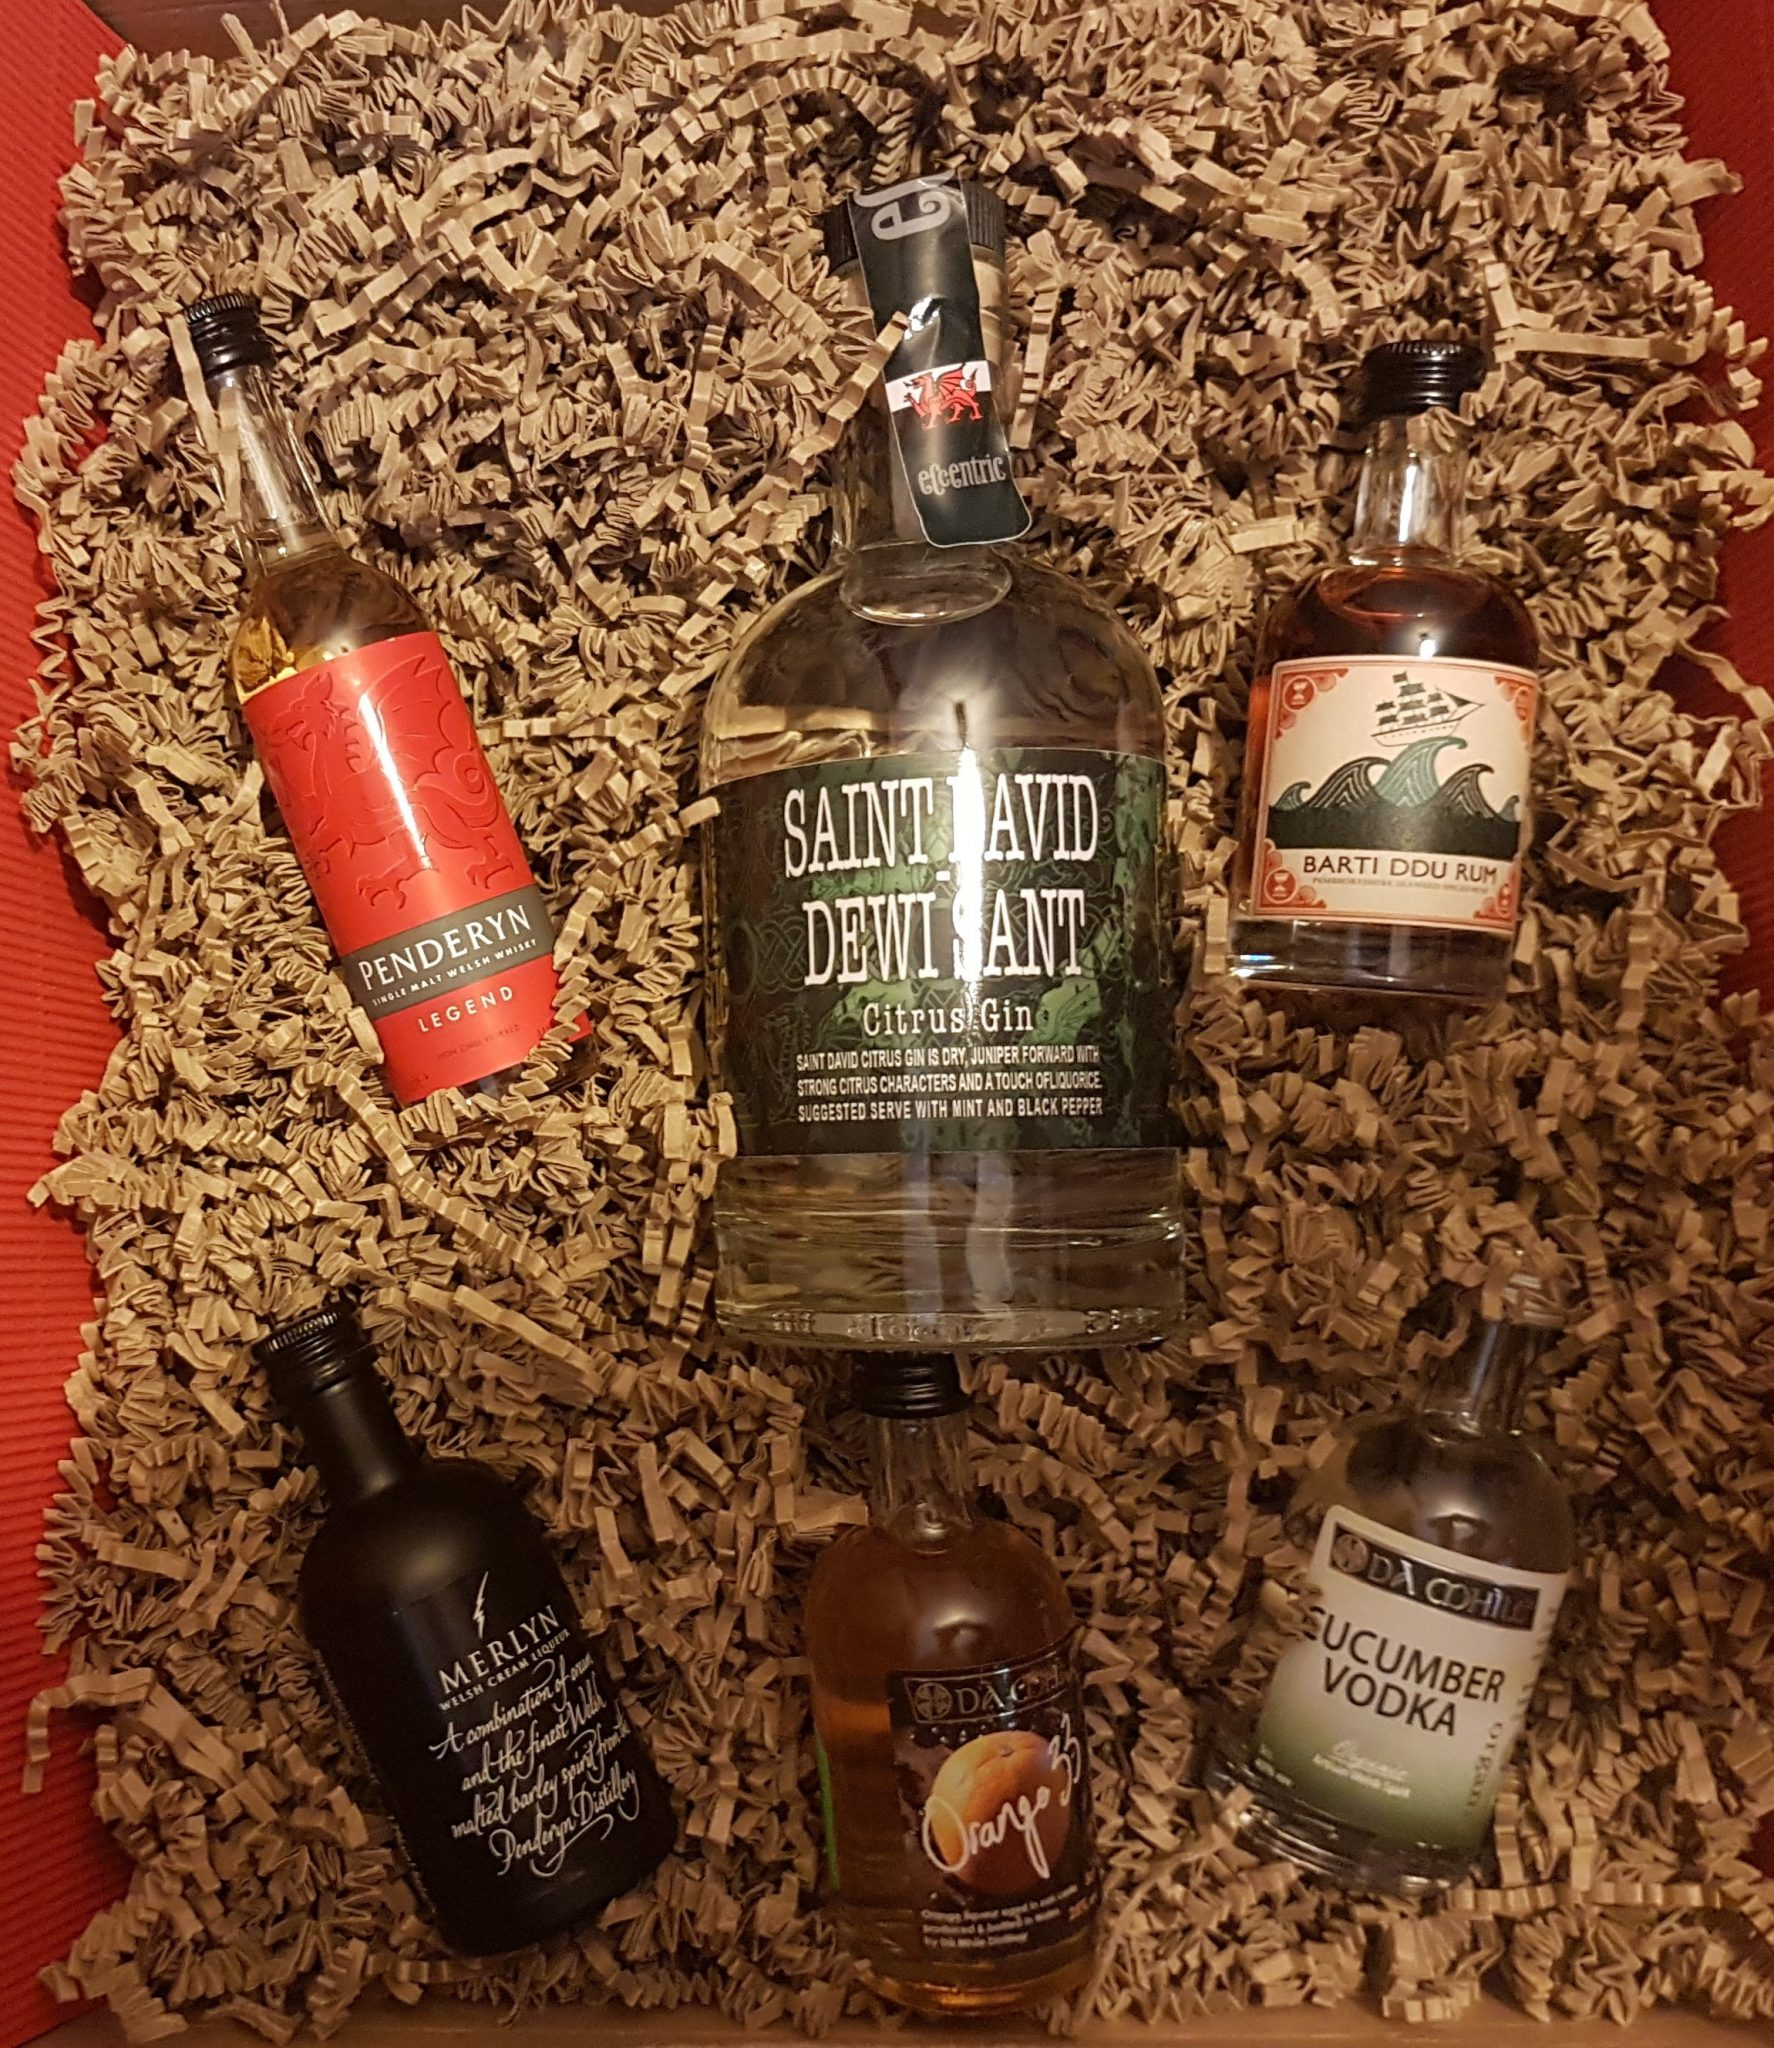 Taste of Welsh Spirits